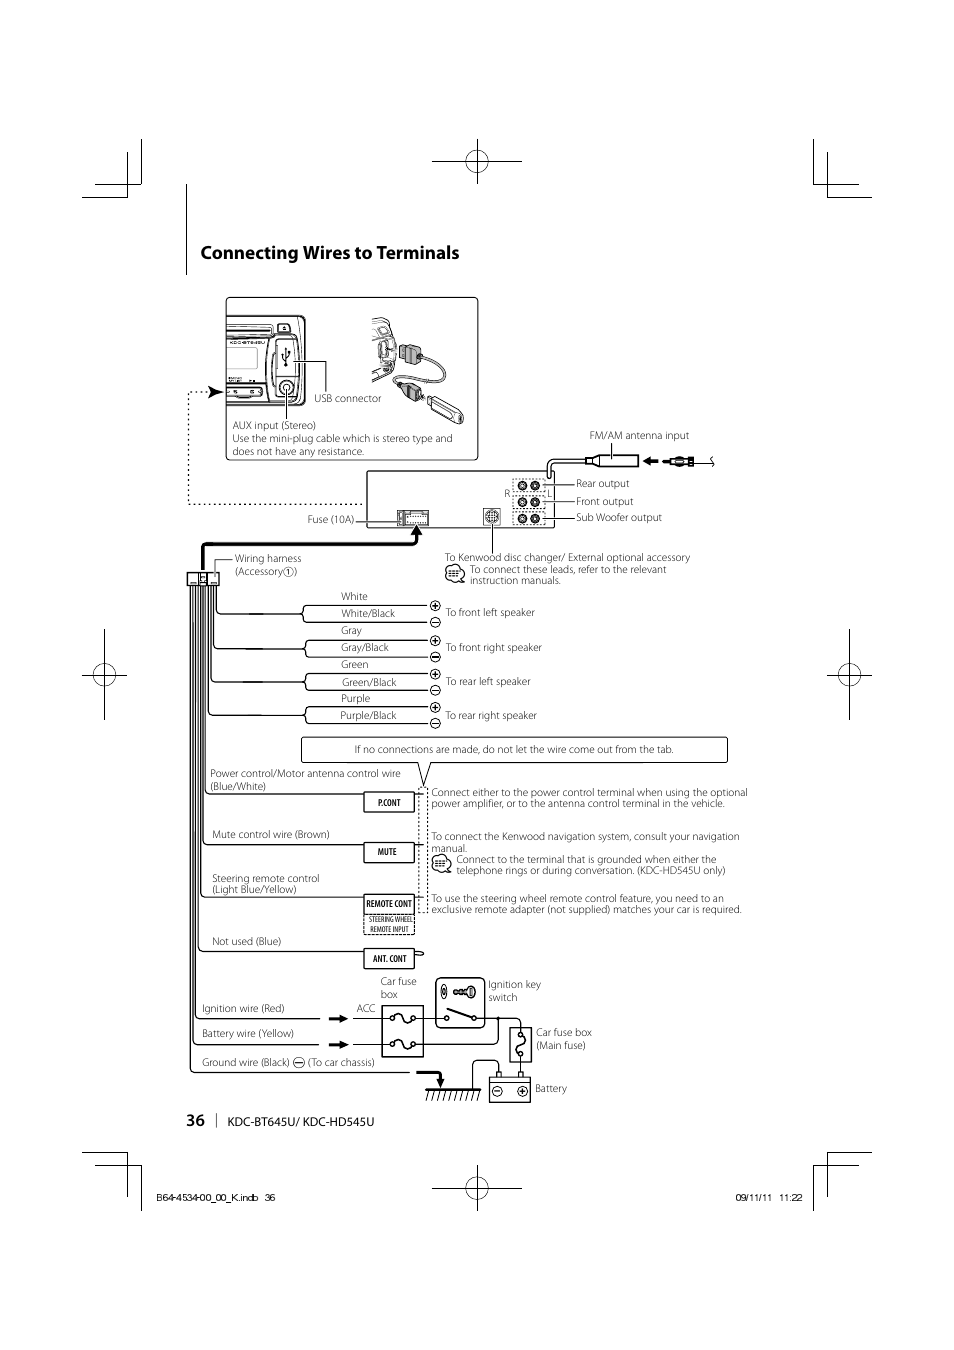 Connecting wires to terminals | Kenwood KDC-HD545U User Manual | Page 36 /  128